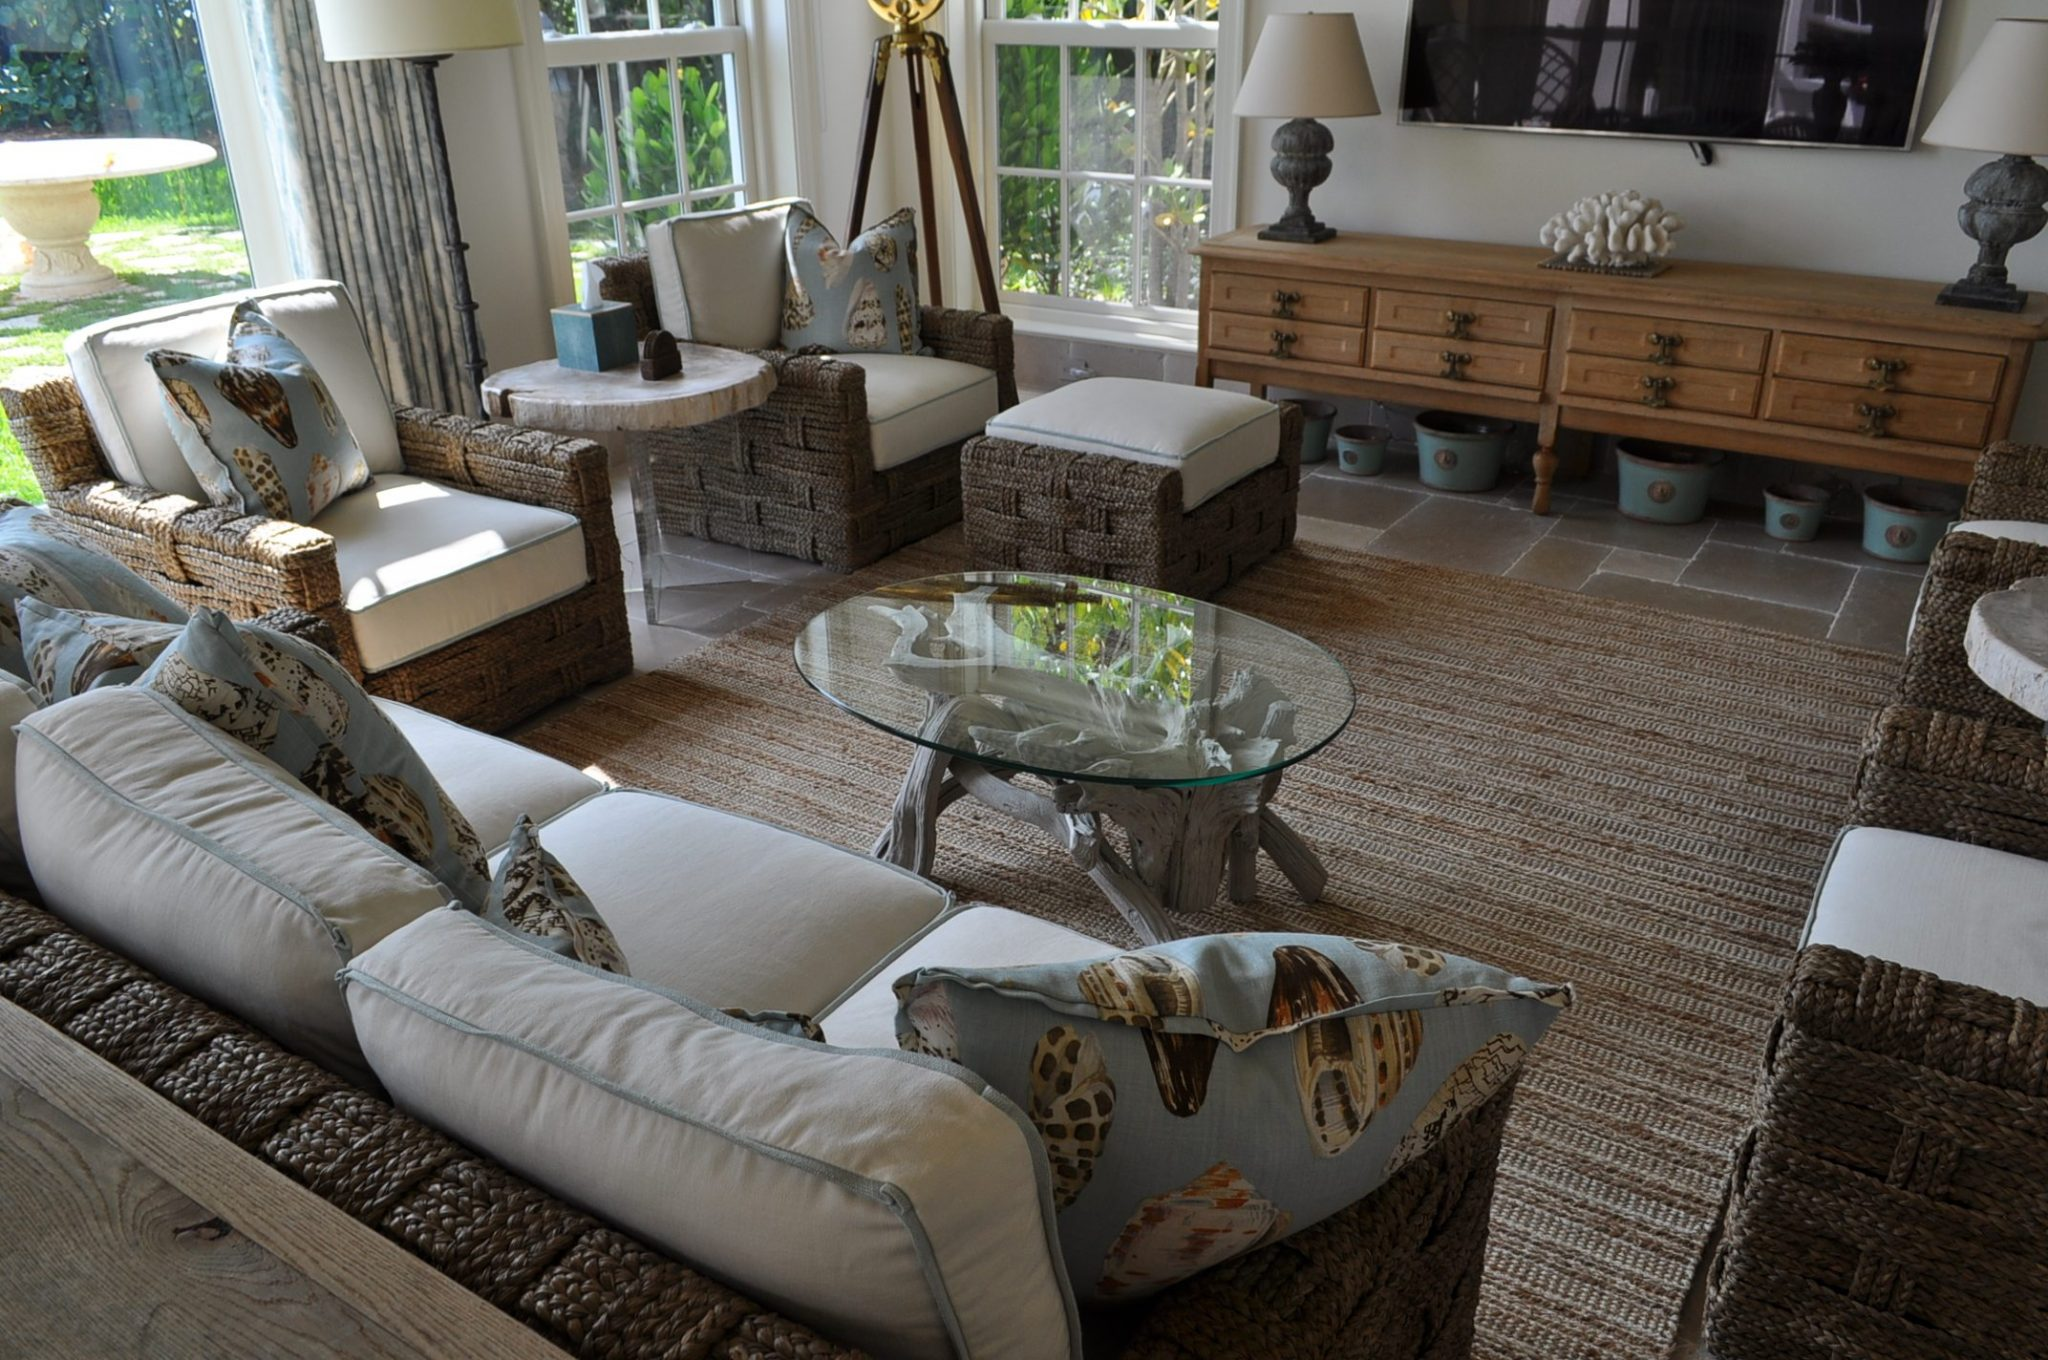 The Inside Of The Home Was Very Nicely Furnished In A Style Nikki Called  Elegantly Casual U0026 My Small Oval Driftwood Coffee Table Was Placed In A  Room With A ...